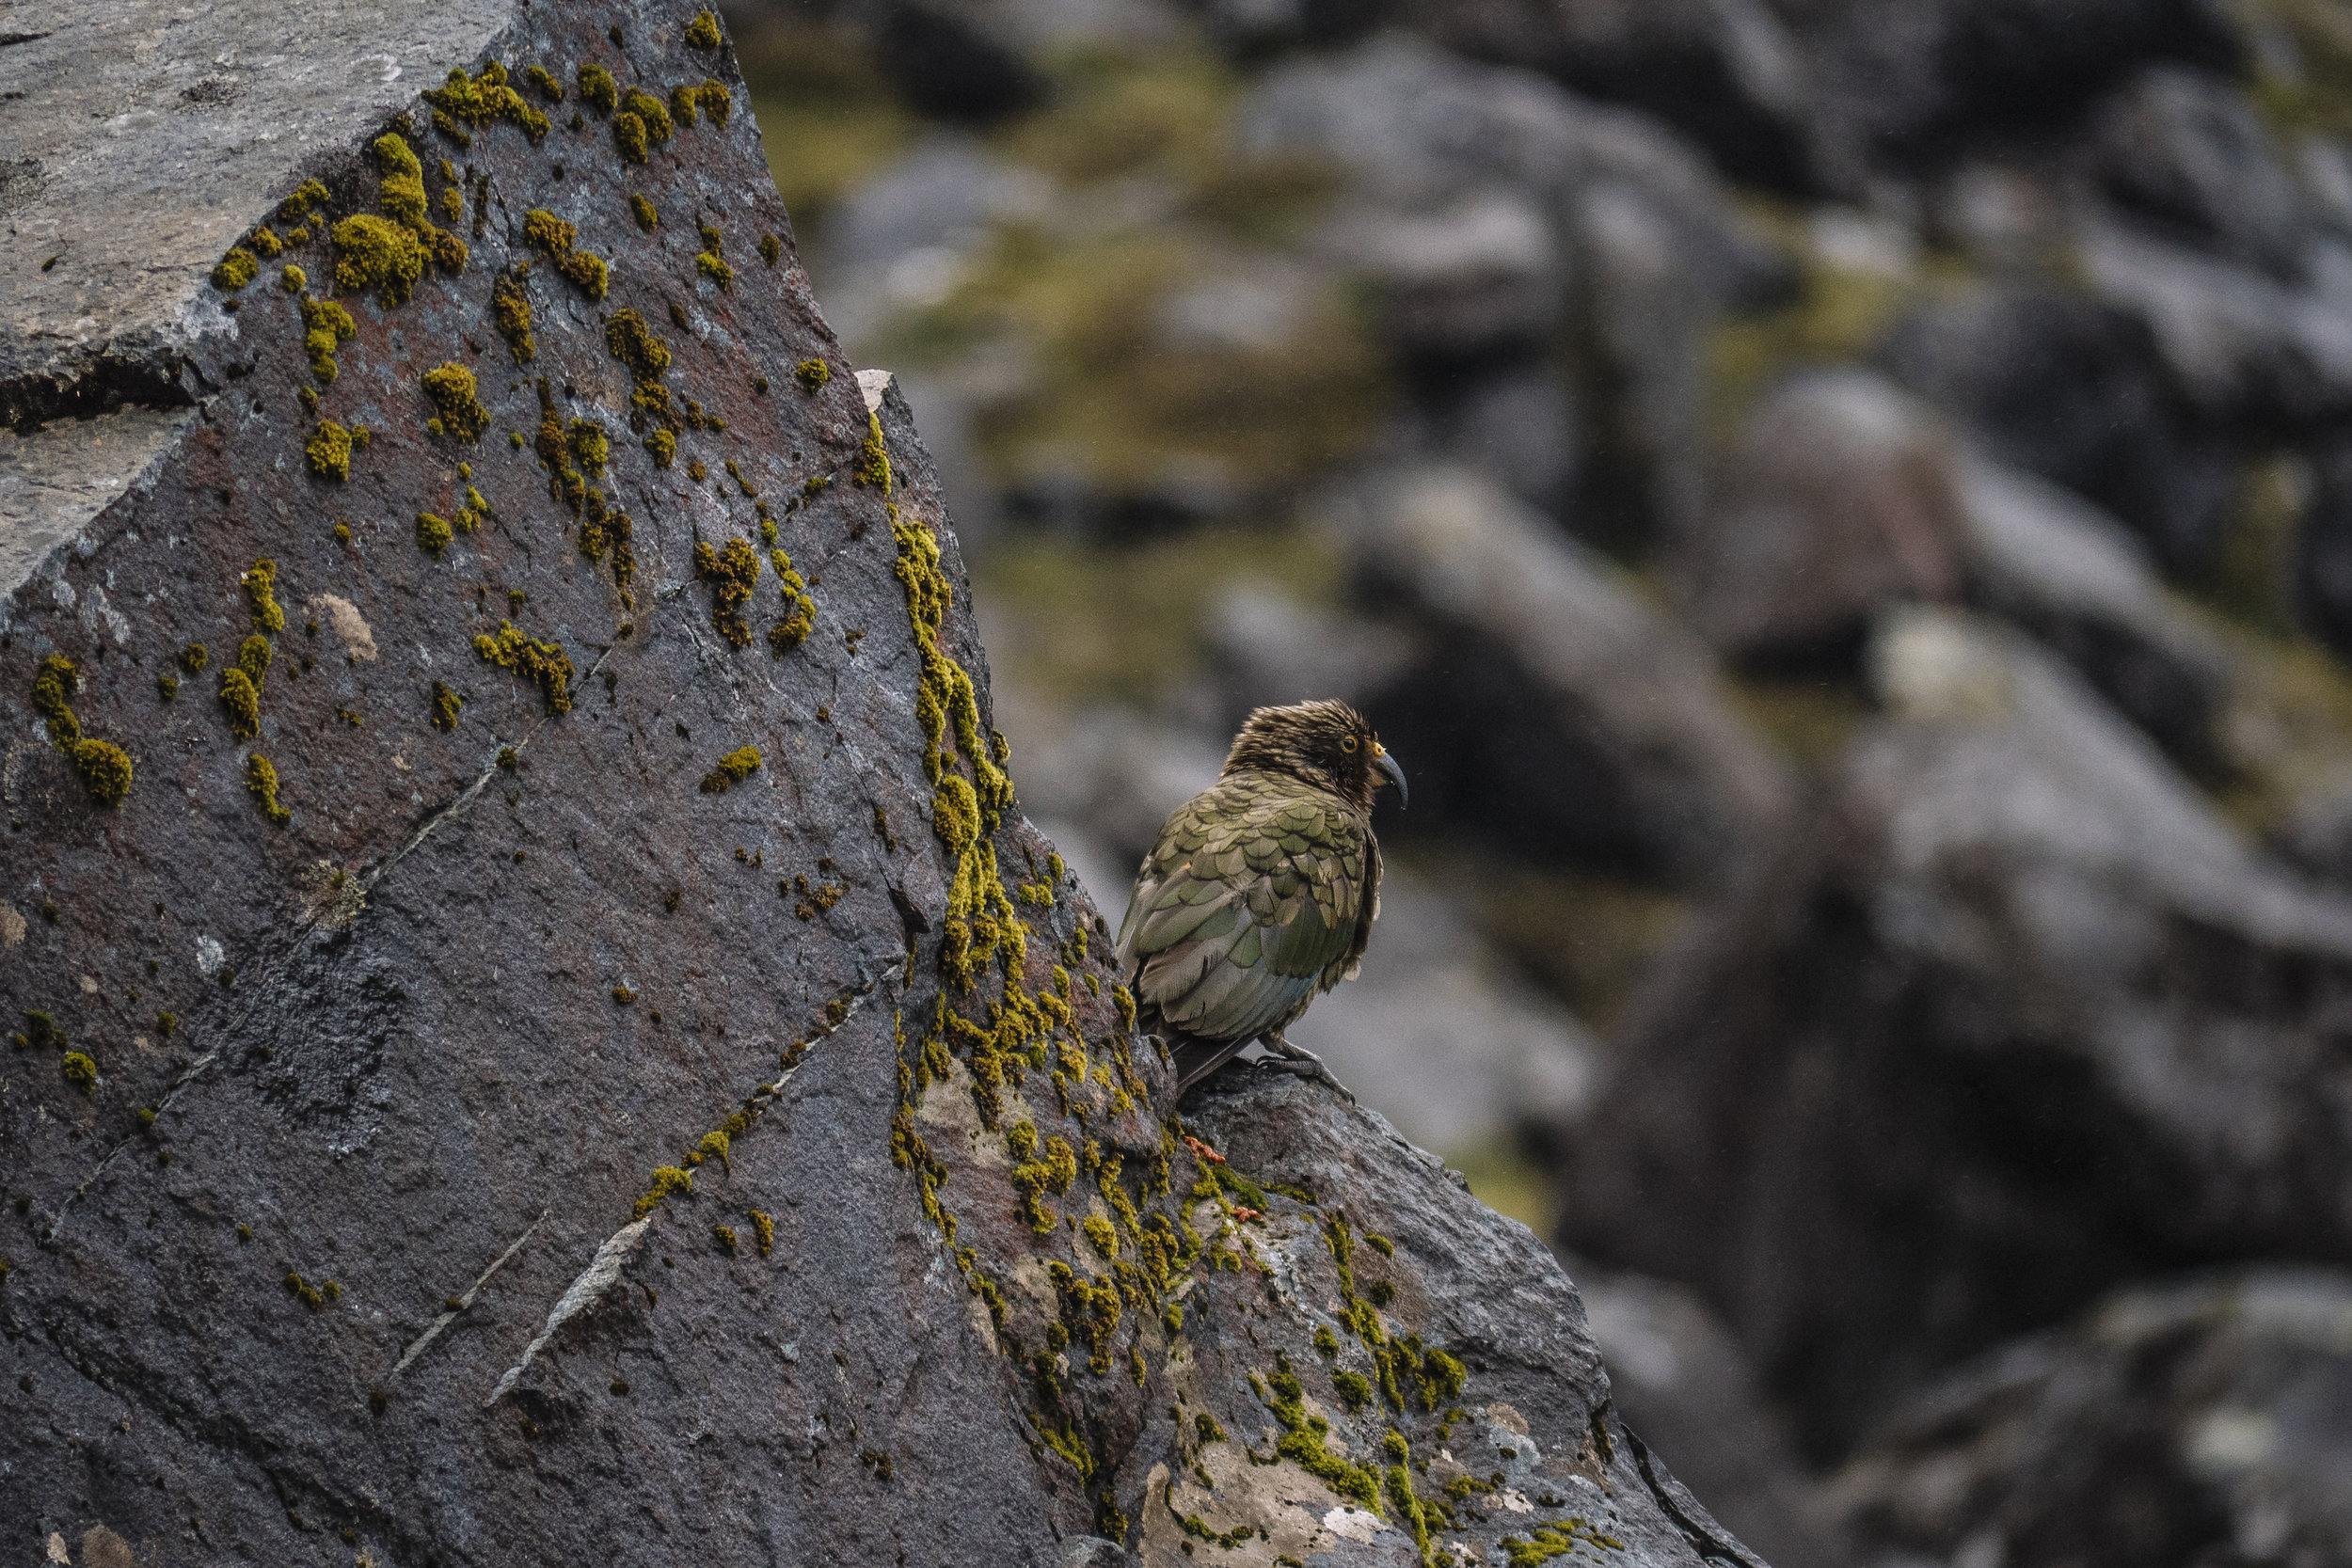 Kea - Fjordlands National Park, New Zealand - 2016